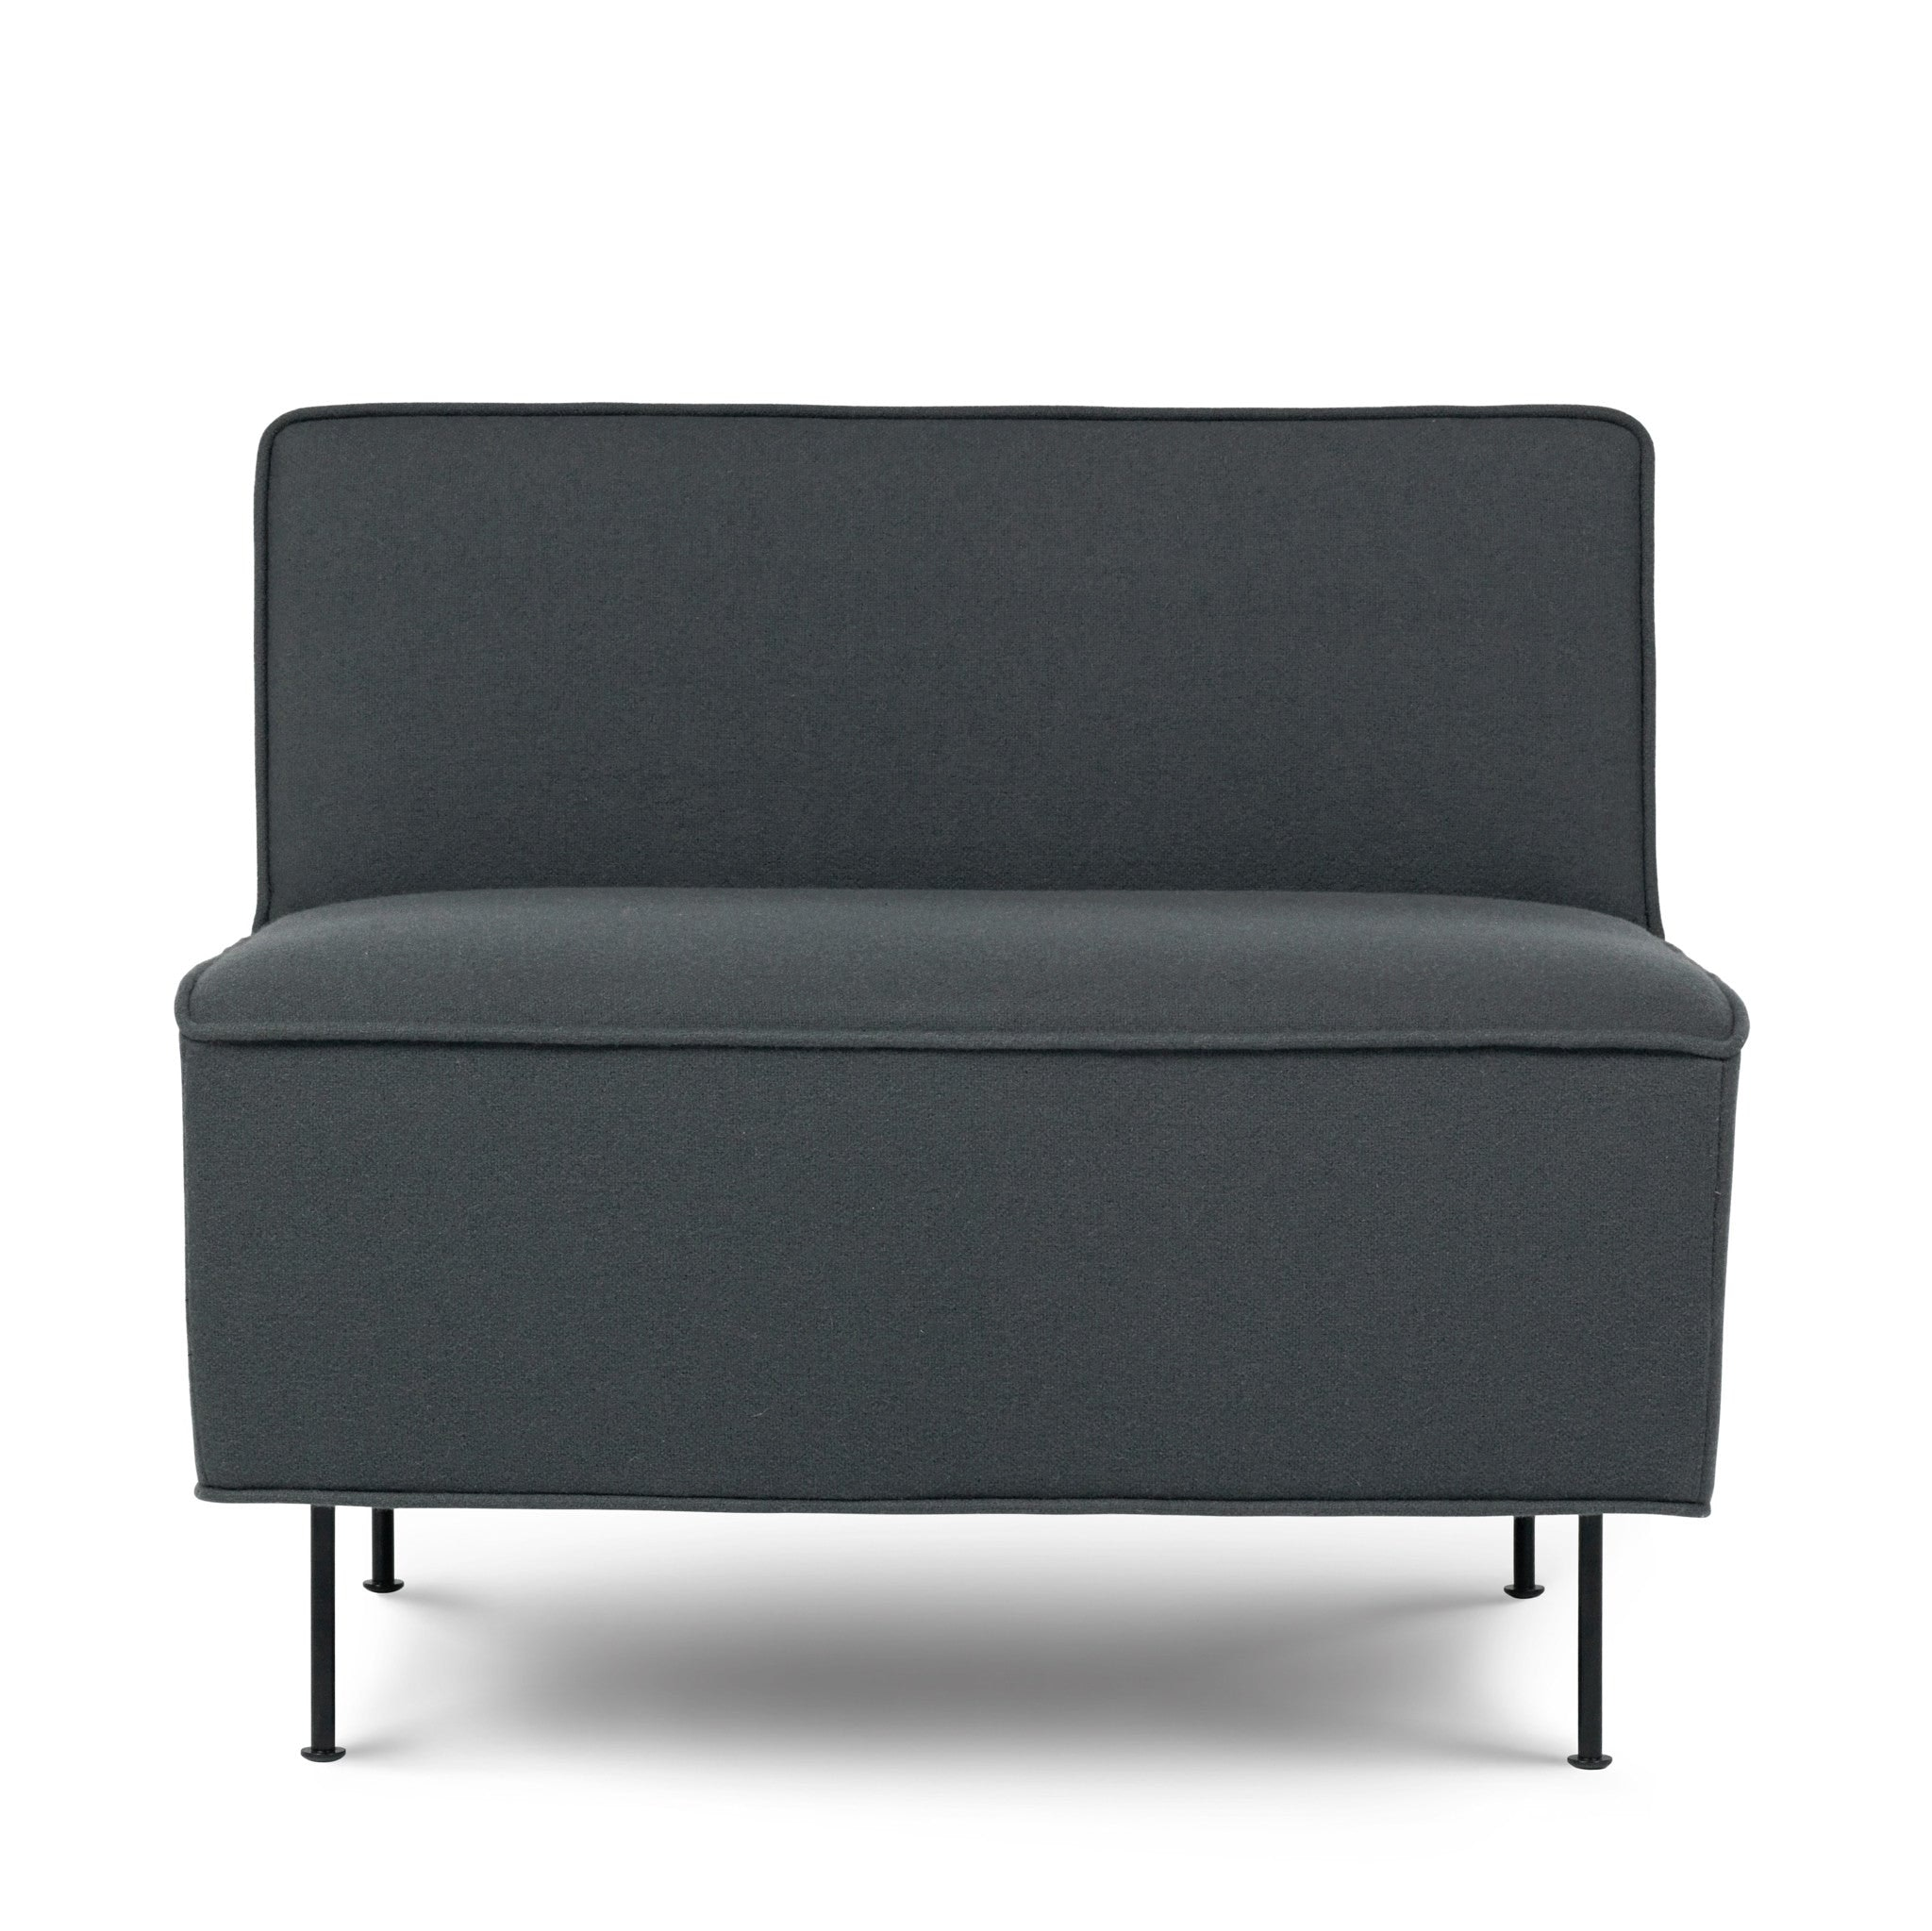 Modern Line Lounge Chair by Gubi